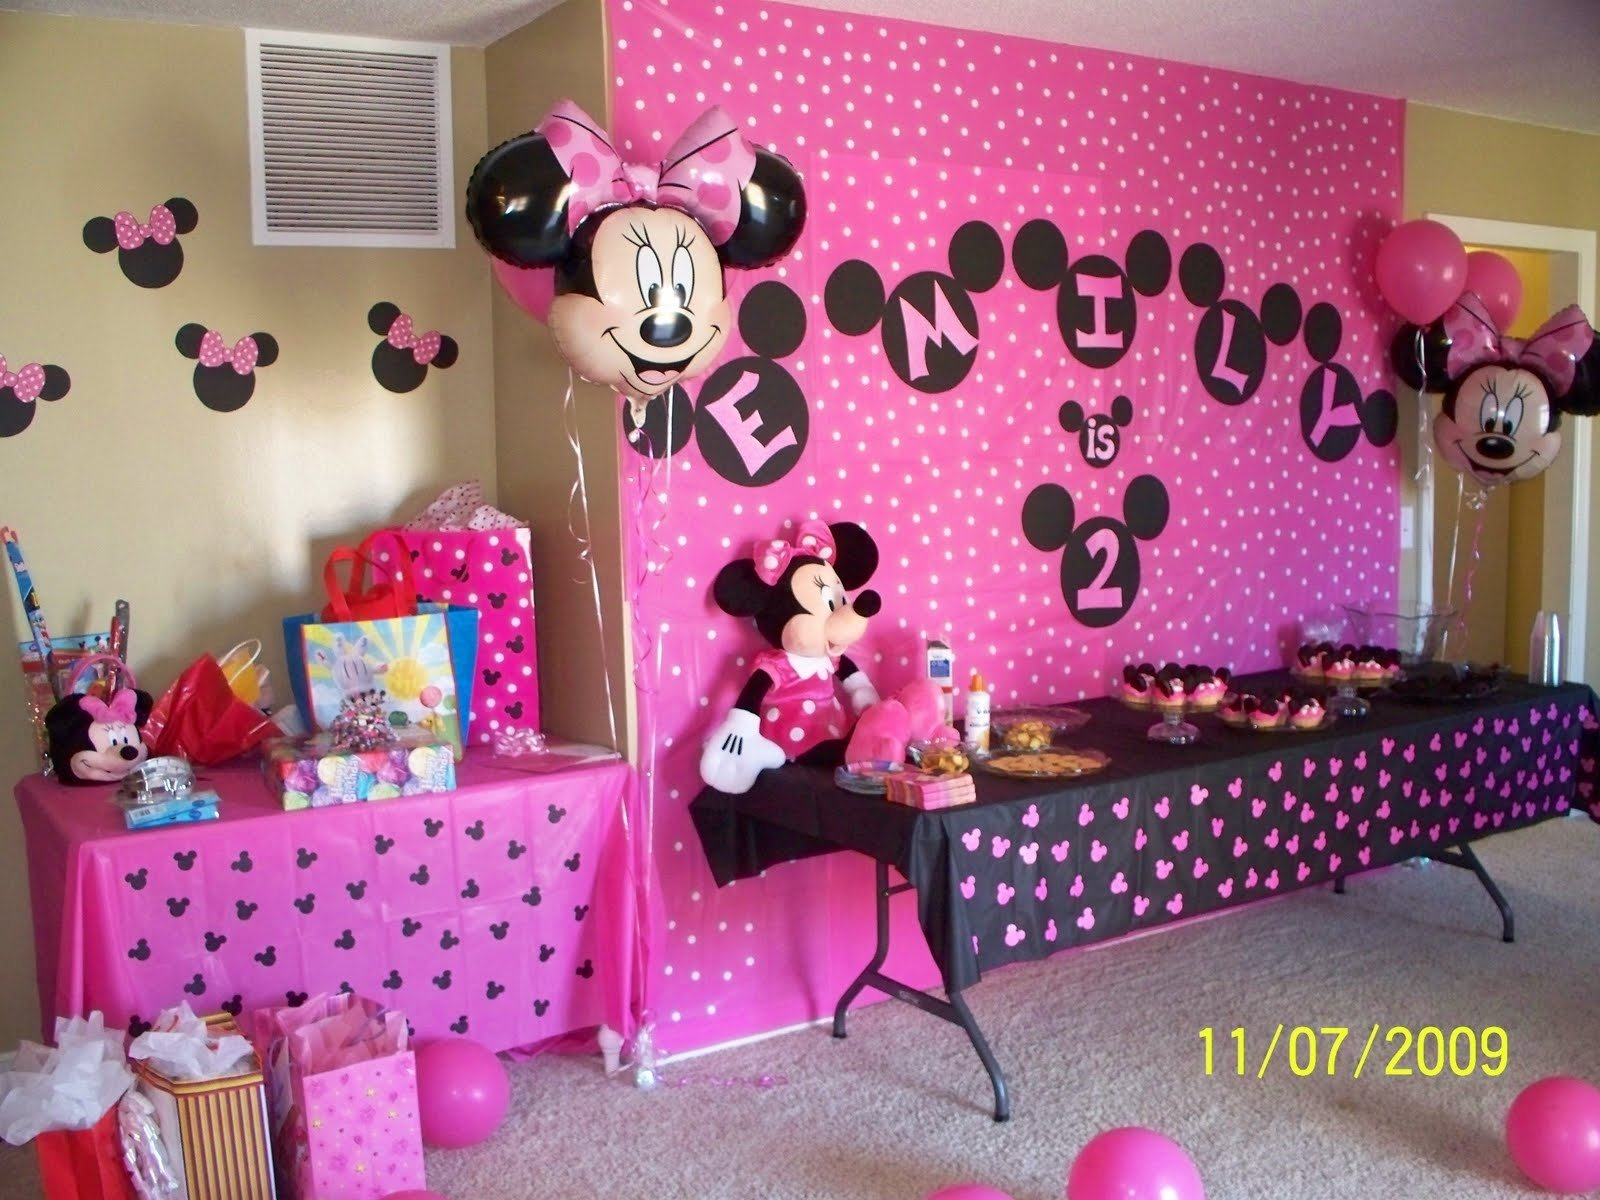 10 Stylish Birthday Party Ideas For 2 Year Old Girl Parties Girls September 2011